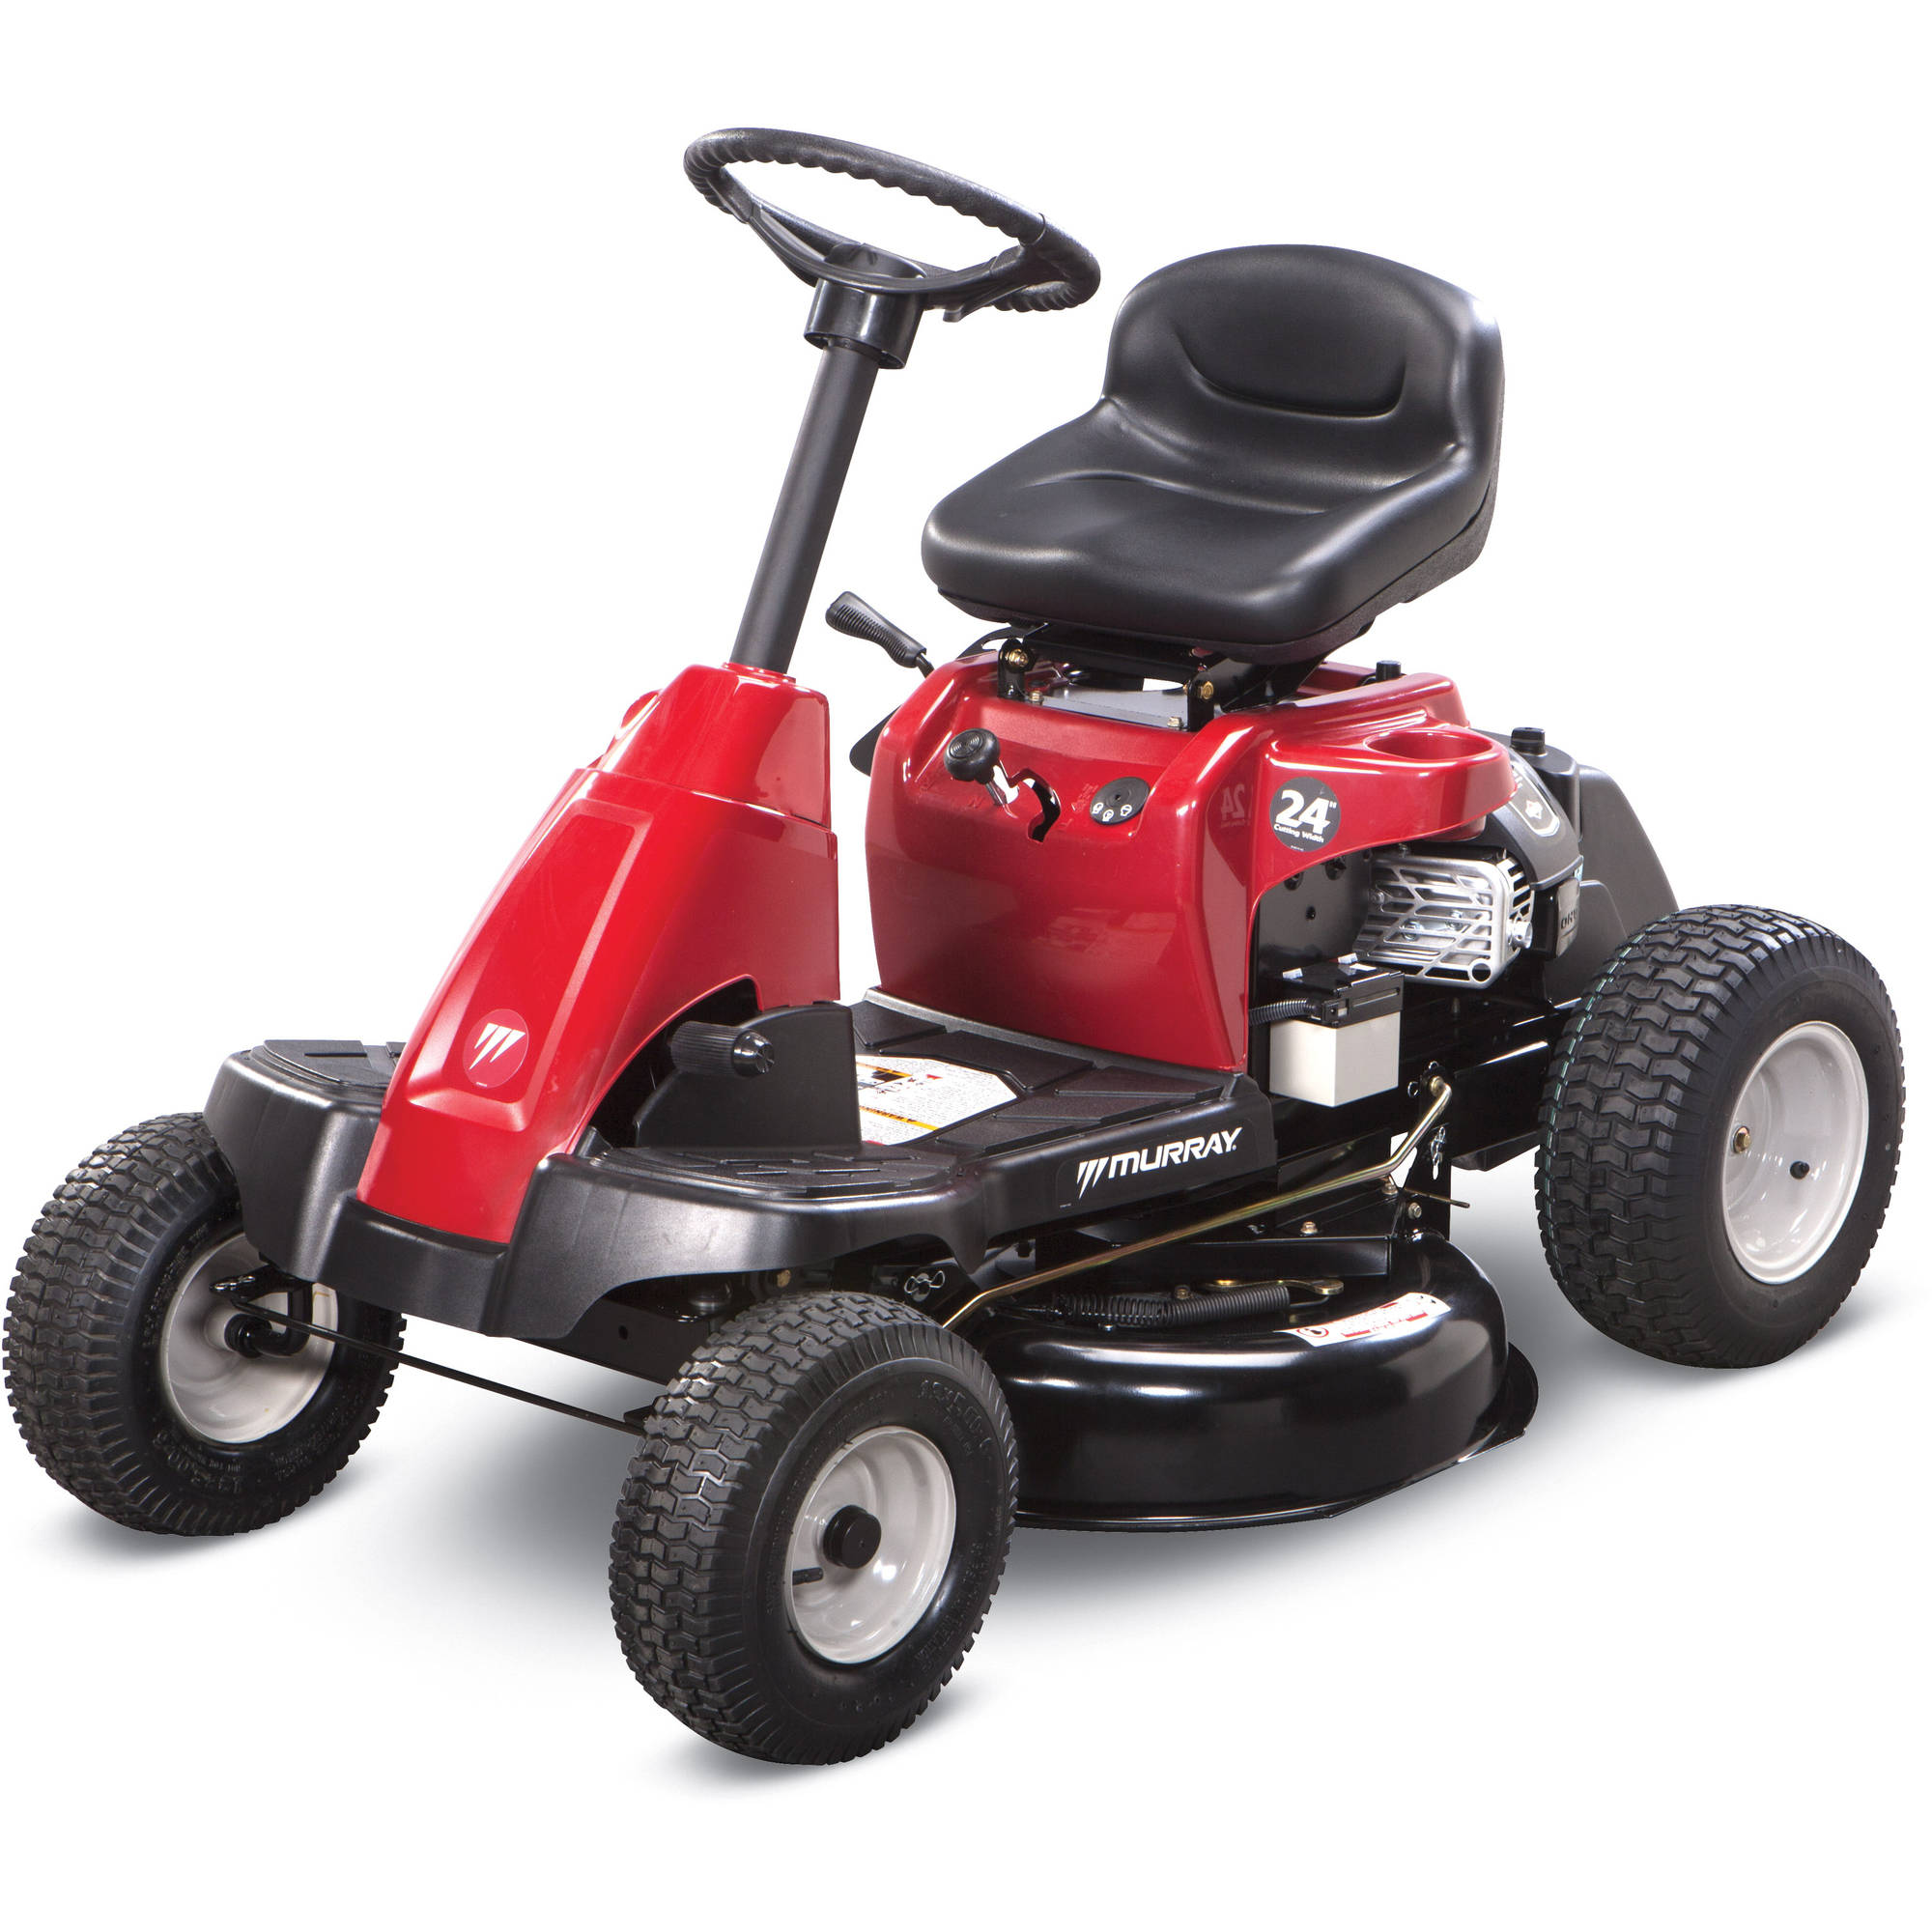 "Murray 24"" Rear Engine Riding Mower with Mulch Kit"